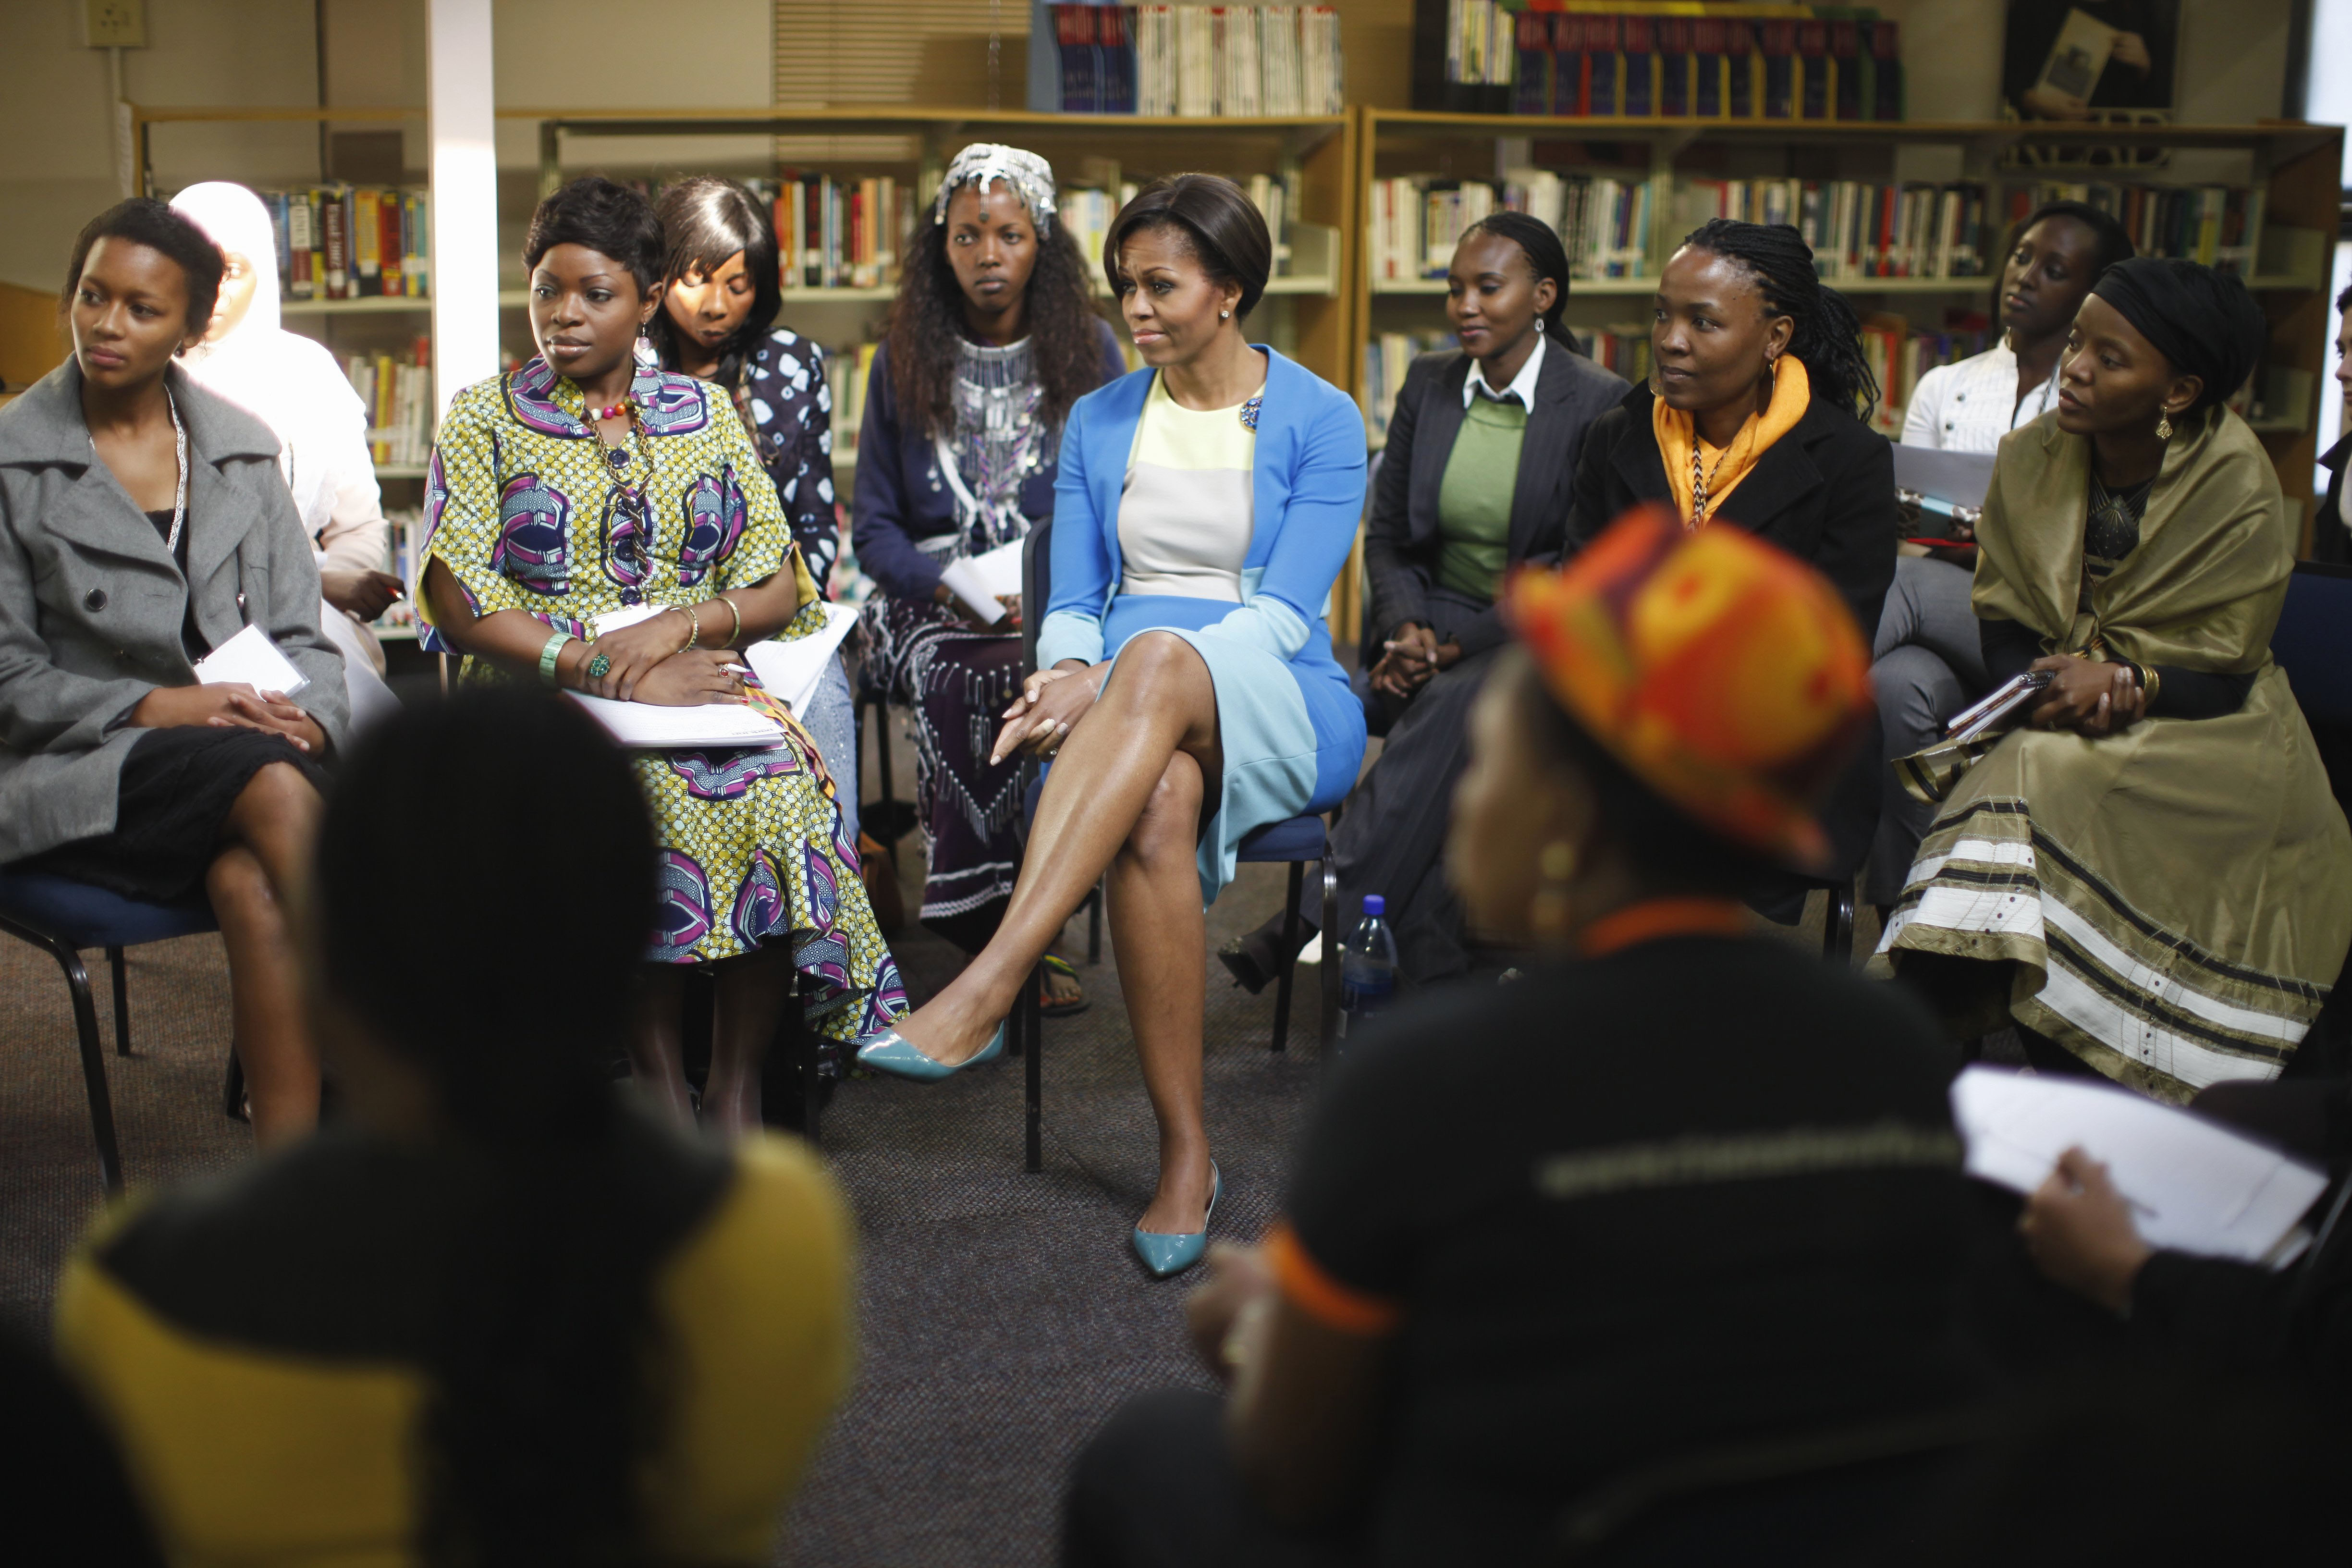 Michelle Obama seated with small group of young African women (© AP Images)